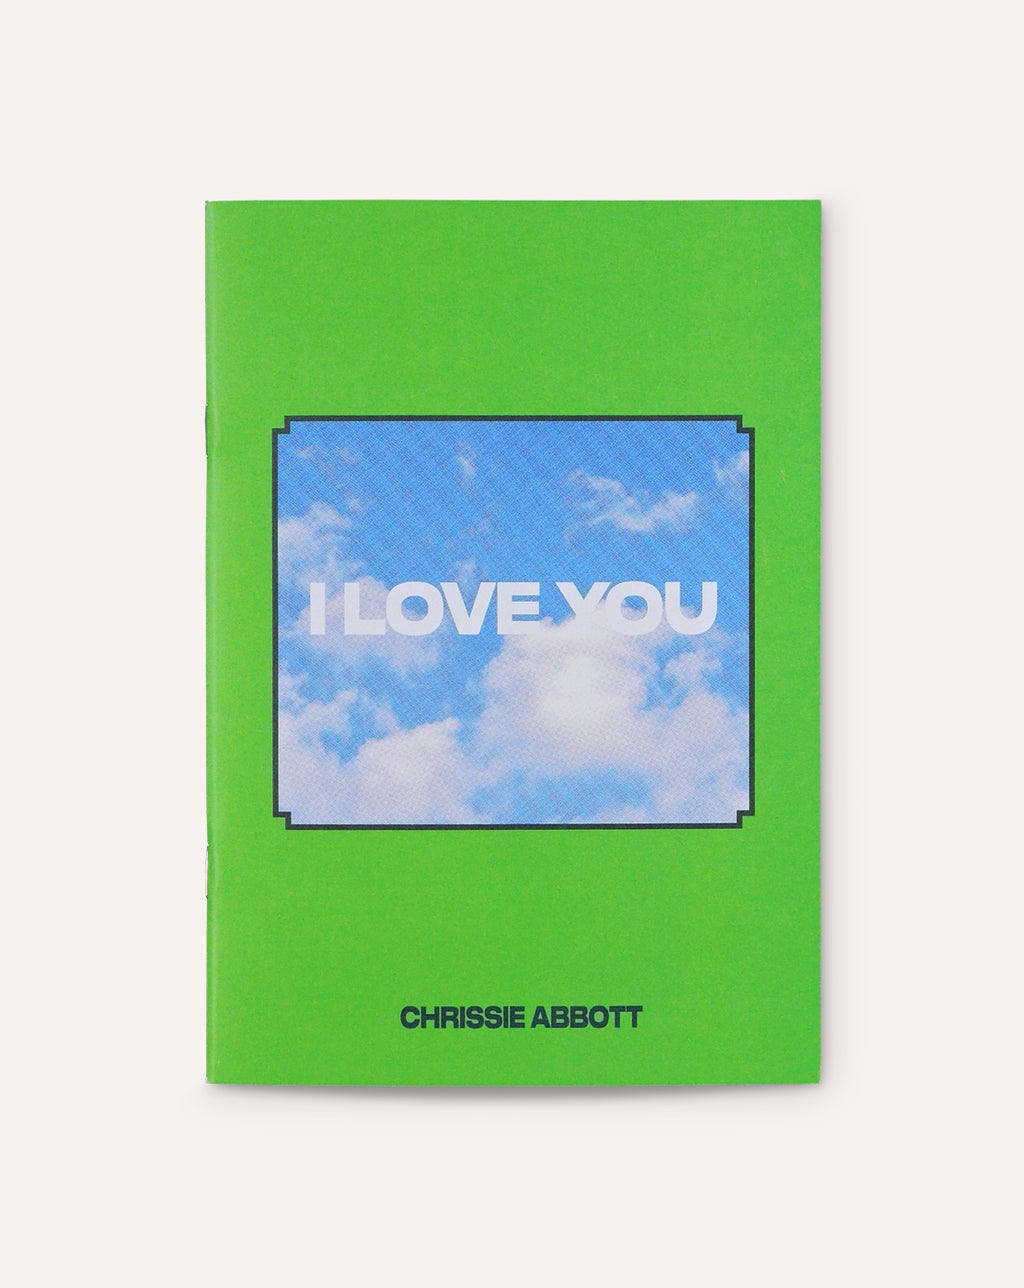 I LOVE YOU / Chrissie Abbott